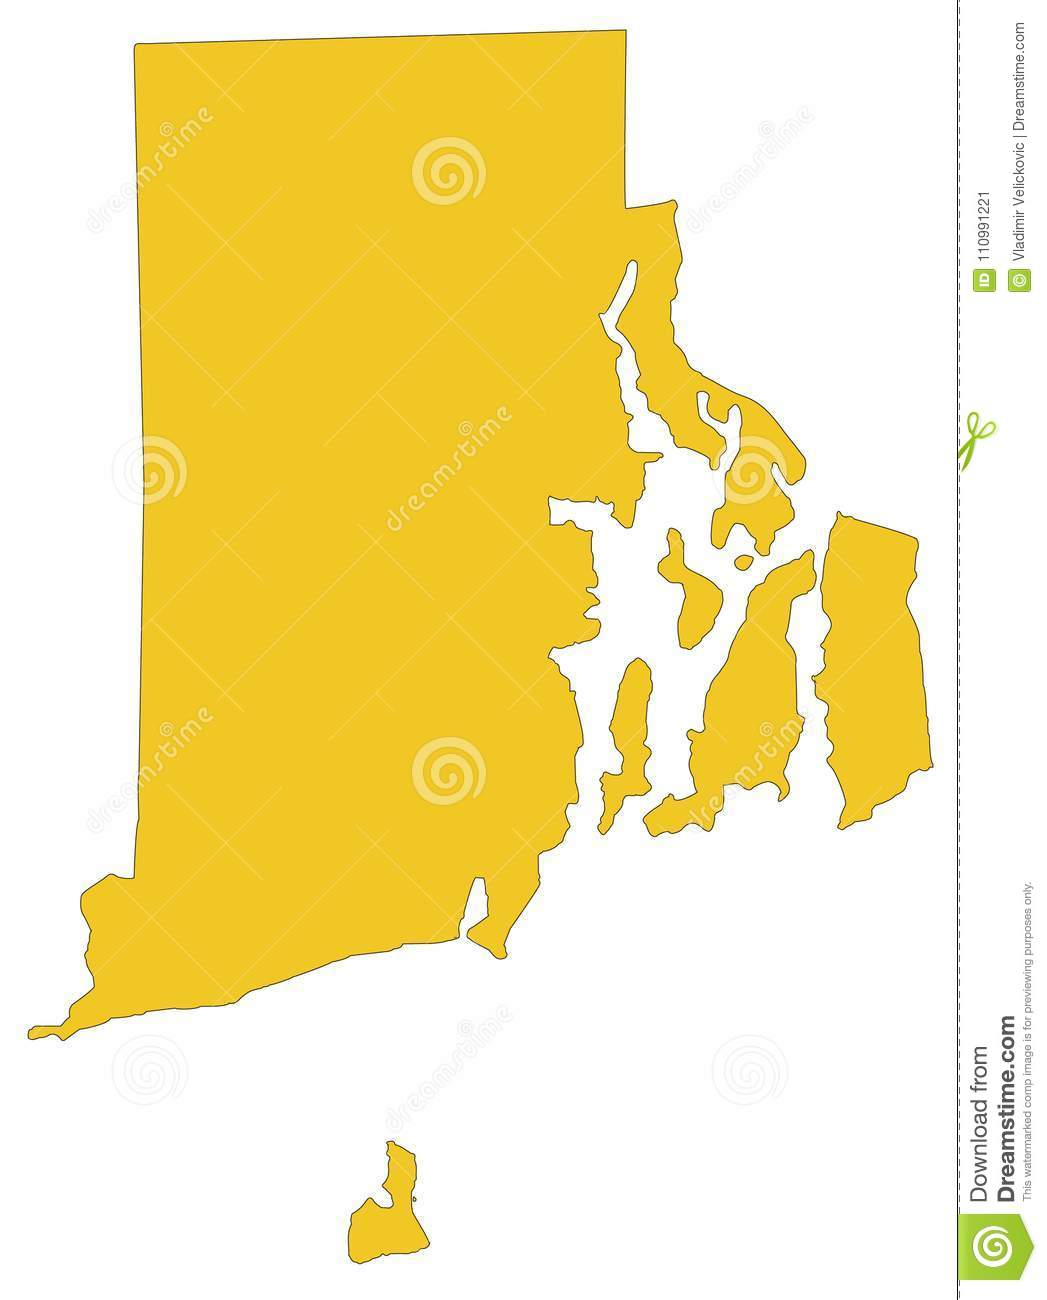 Rhode Island Map - State In The New England Region Of The ...